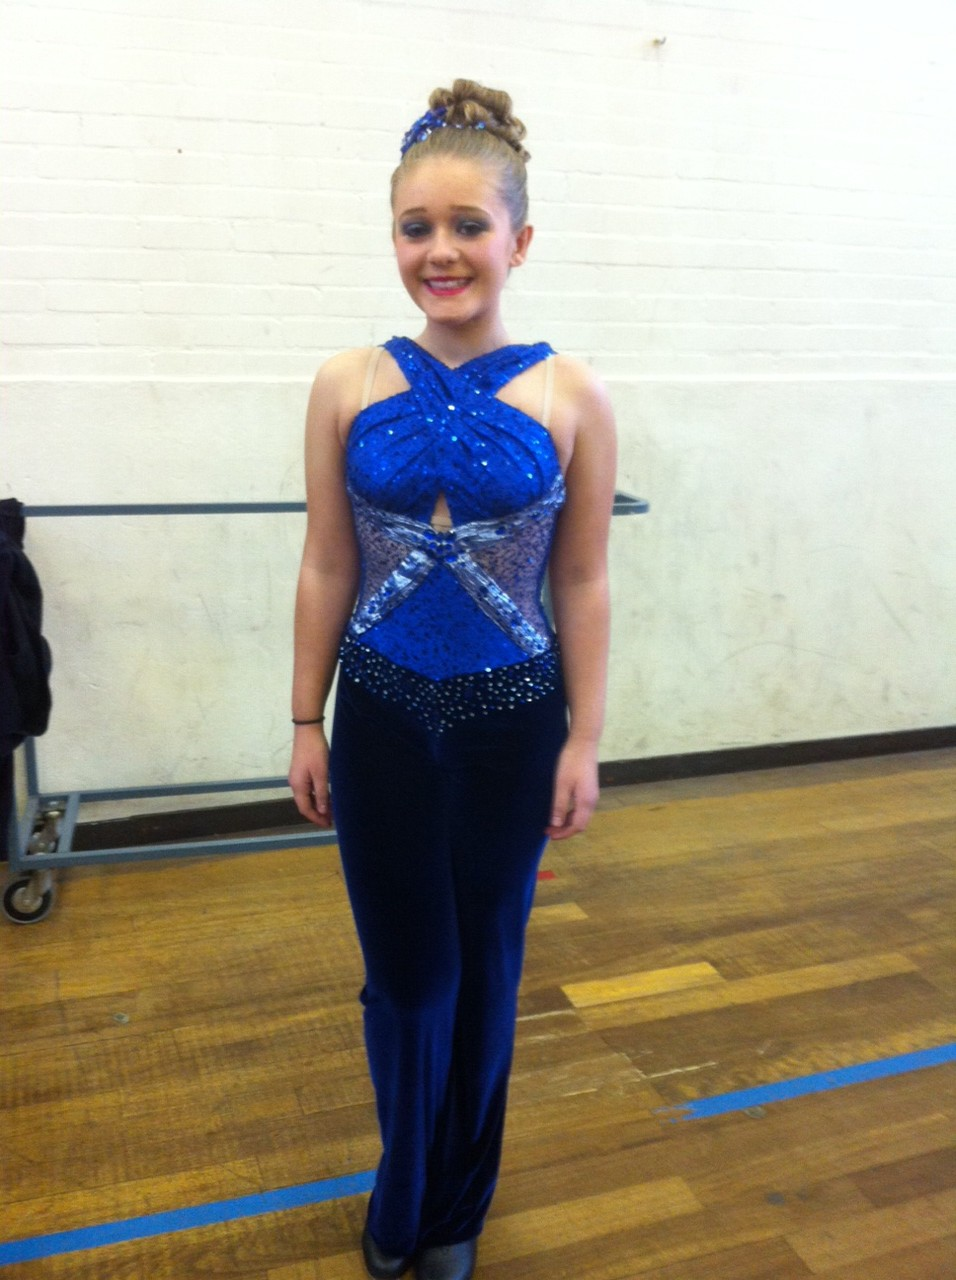 Sparkly blue tap costume